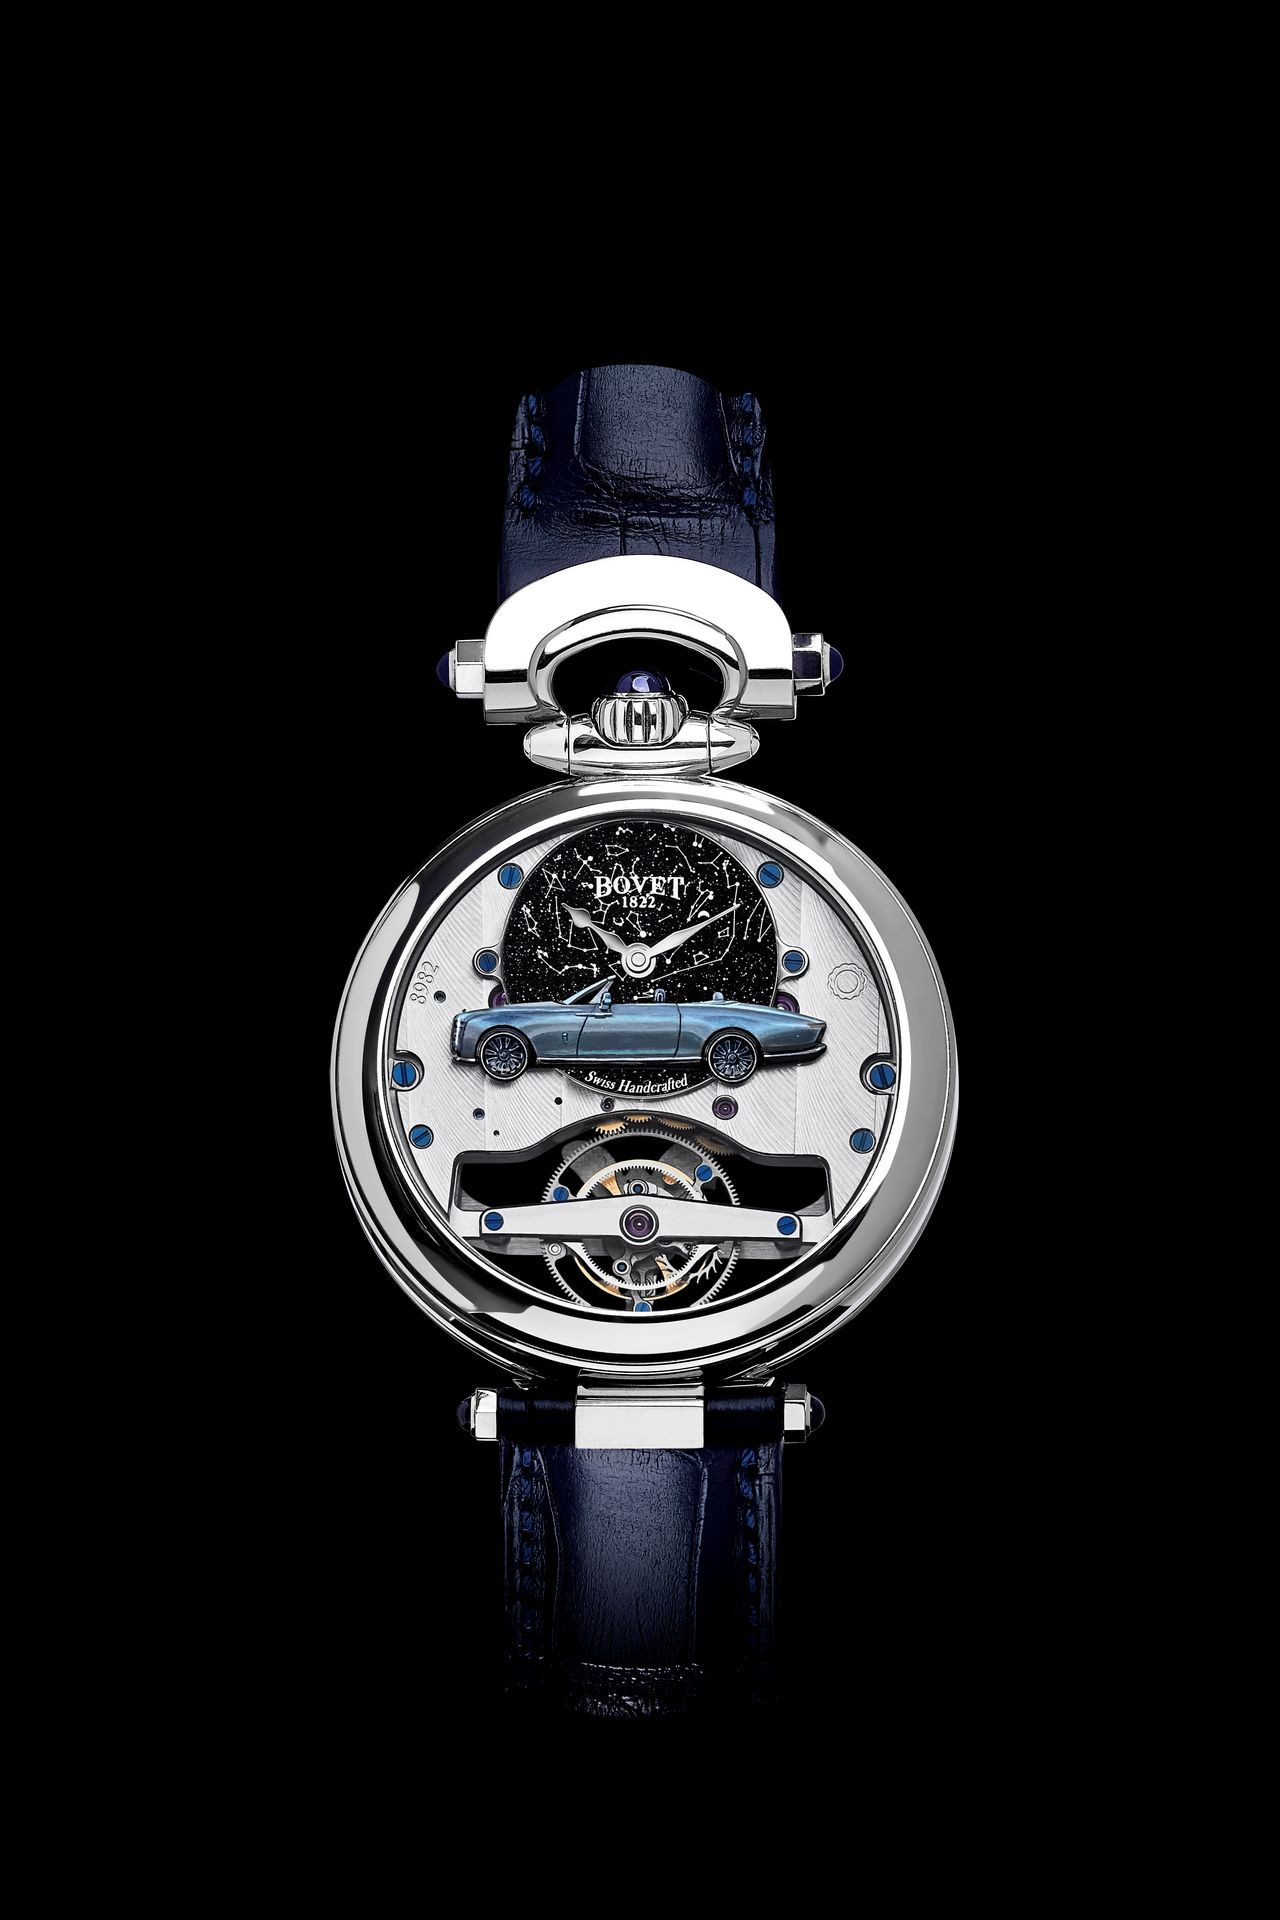 Rolls-Royce-Boat-Tail-Bovet-1822-Watches-5